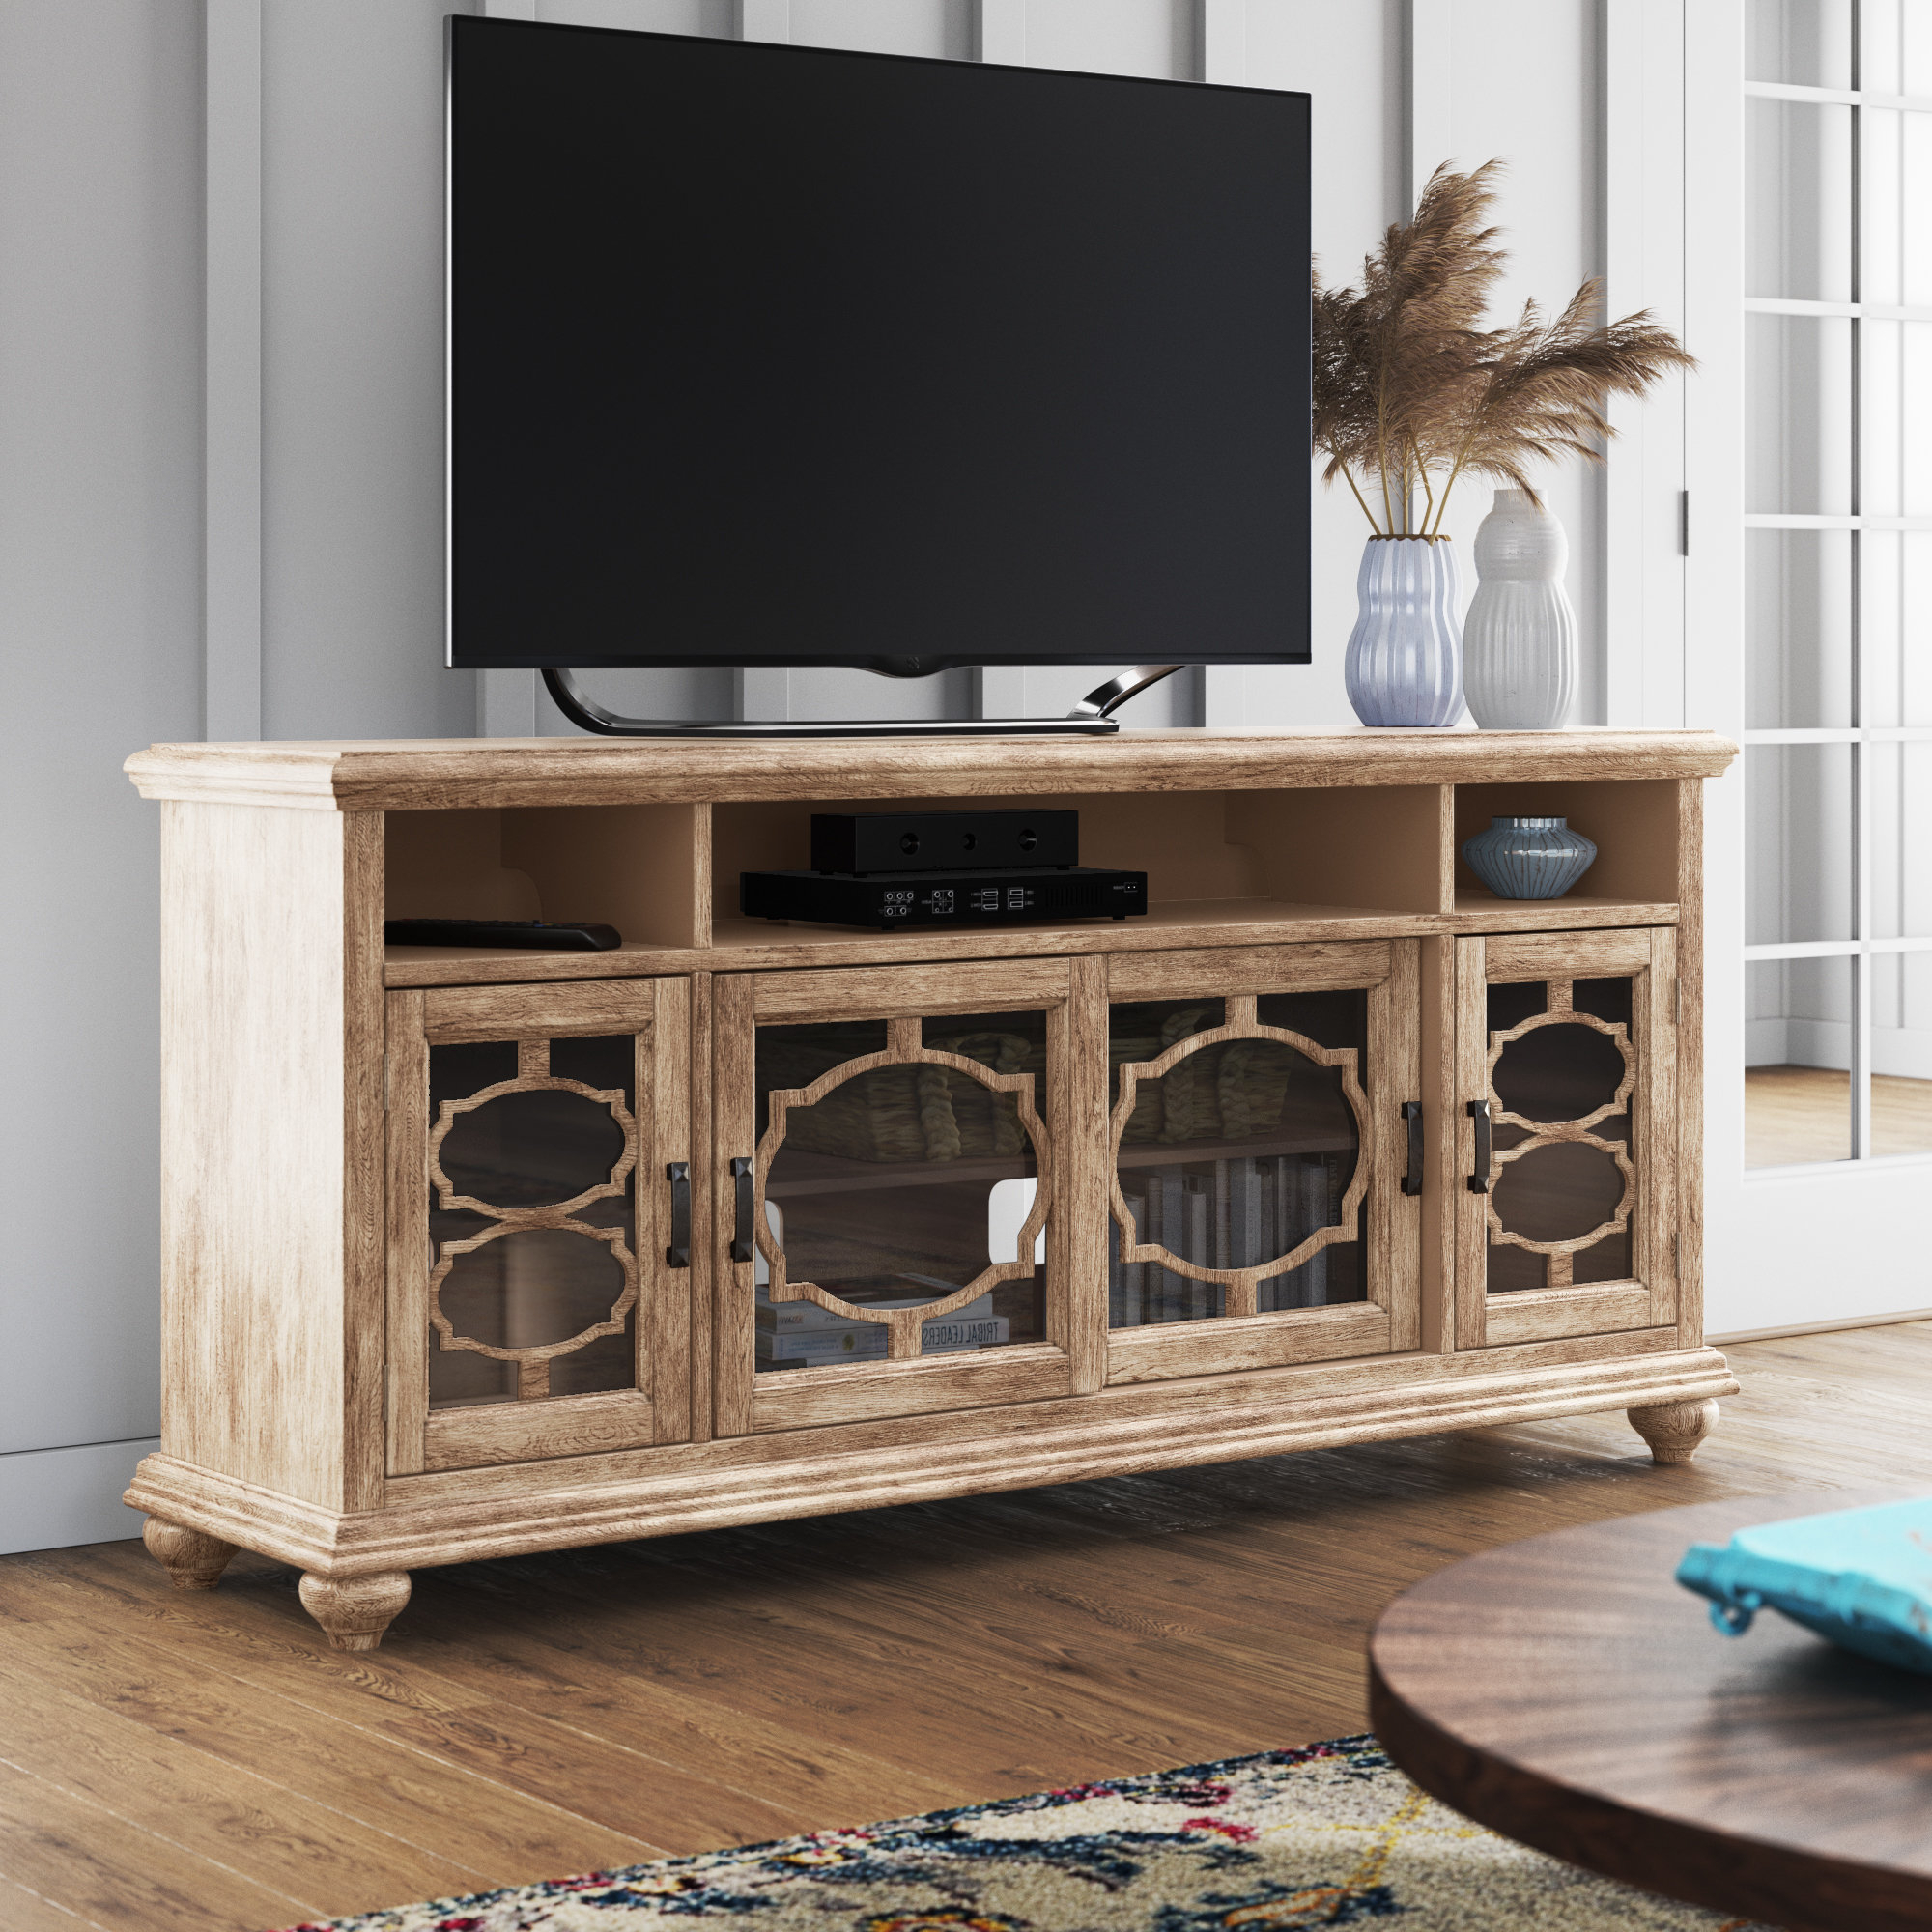 """Most Current West Newbury Tv Stand For Tvs Up To 70"""" With Colefax Vintage Tv Stands For Tvs Up To 78"""" (View 16 of 20)"""